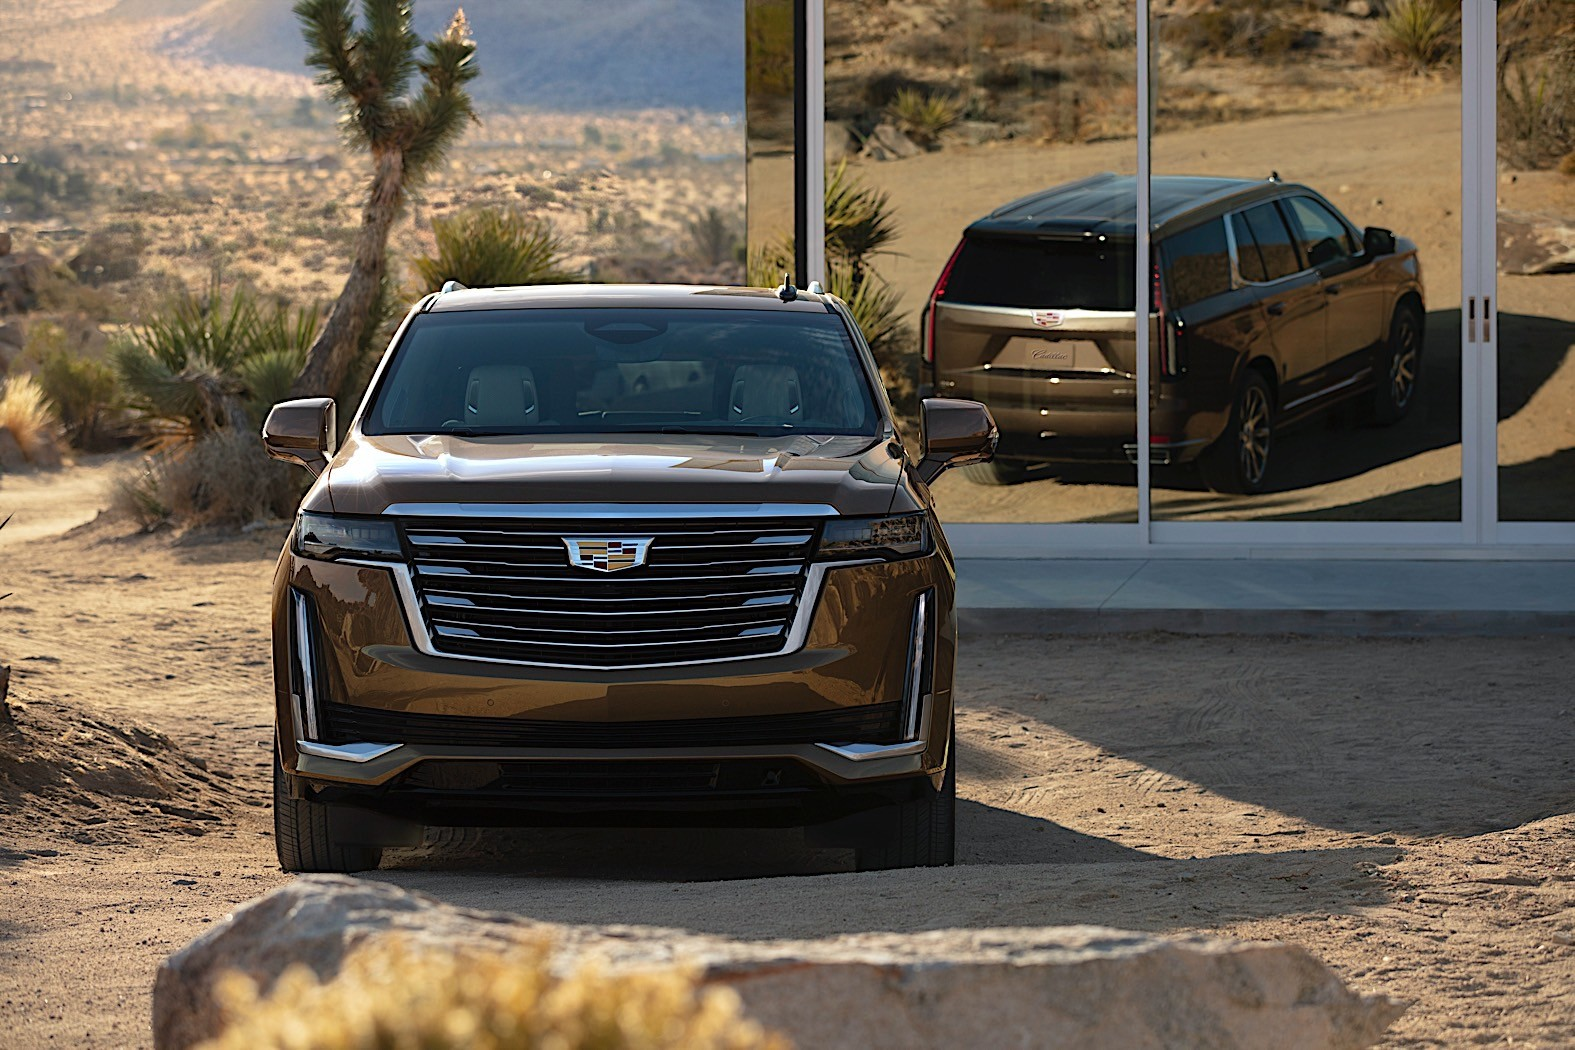 3 Cadillac Escalade V Rendered, Would Ideally Feature Blackwing